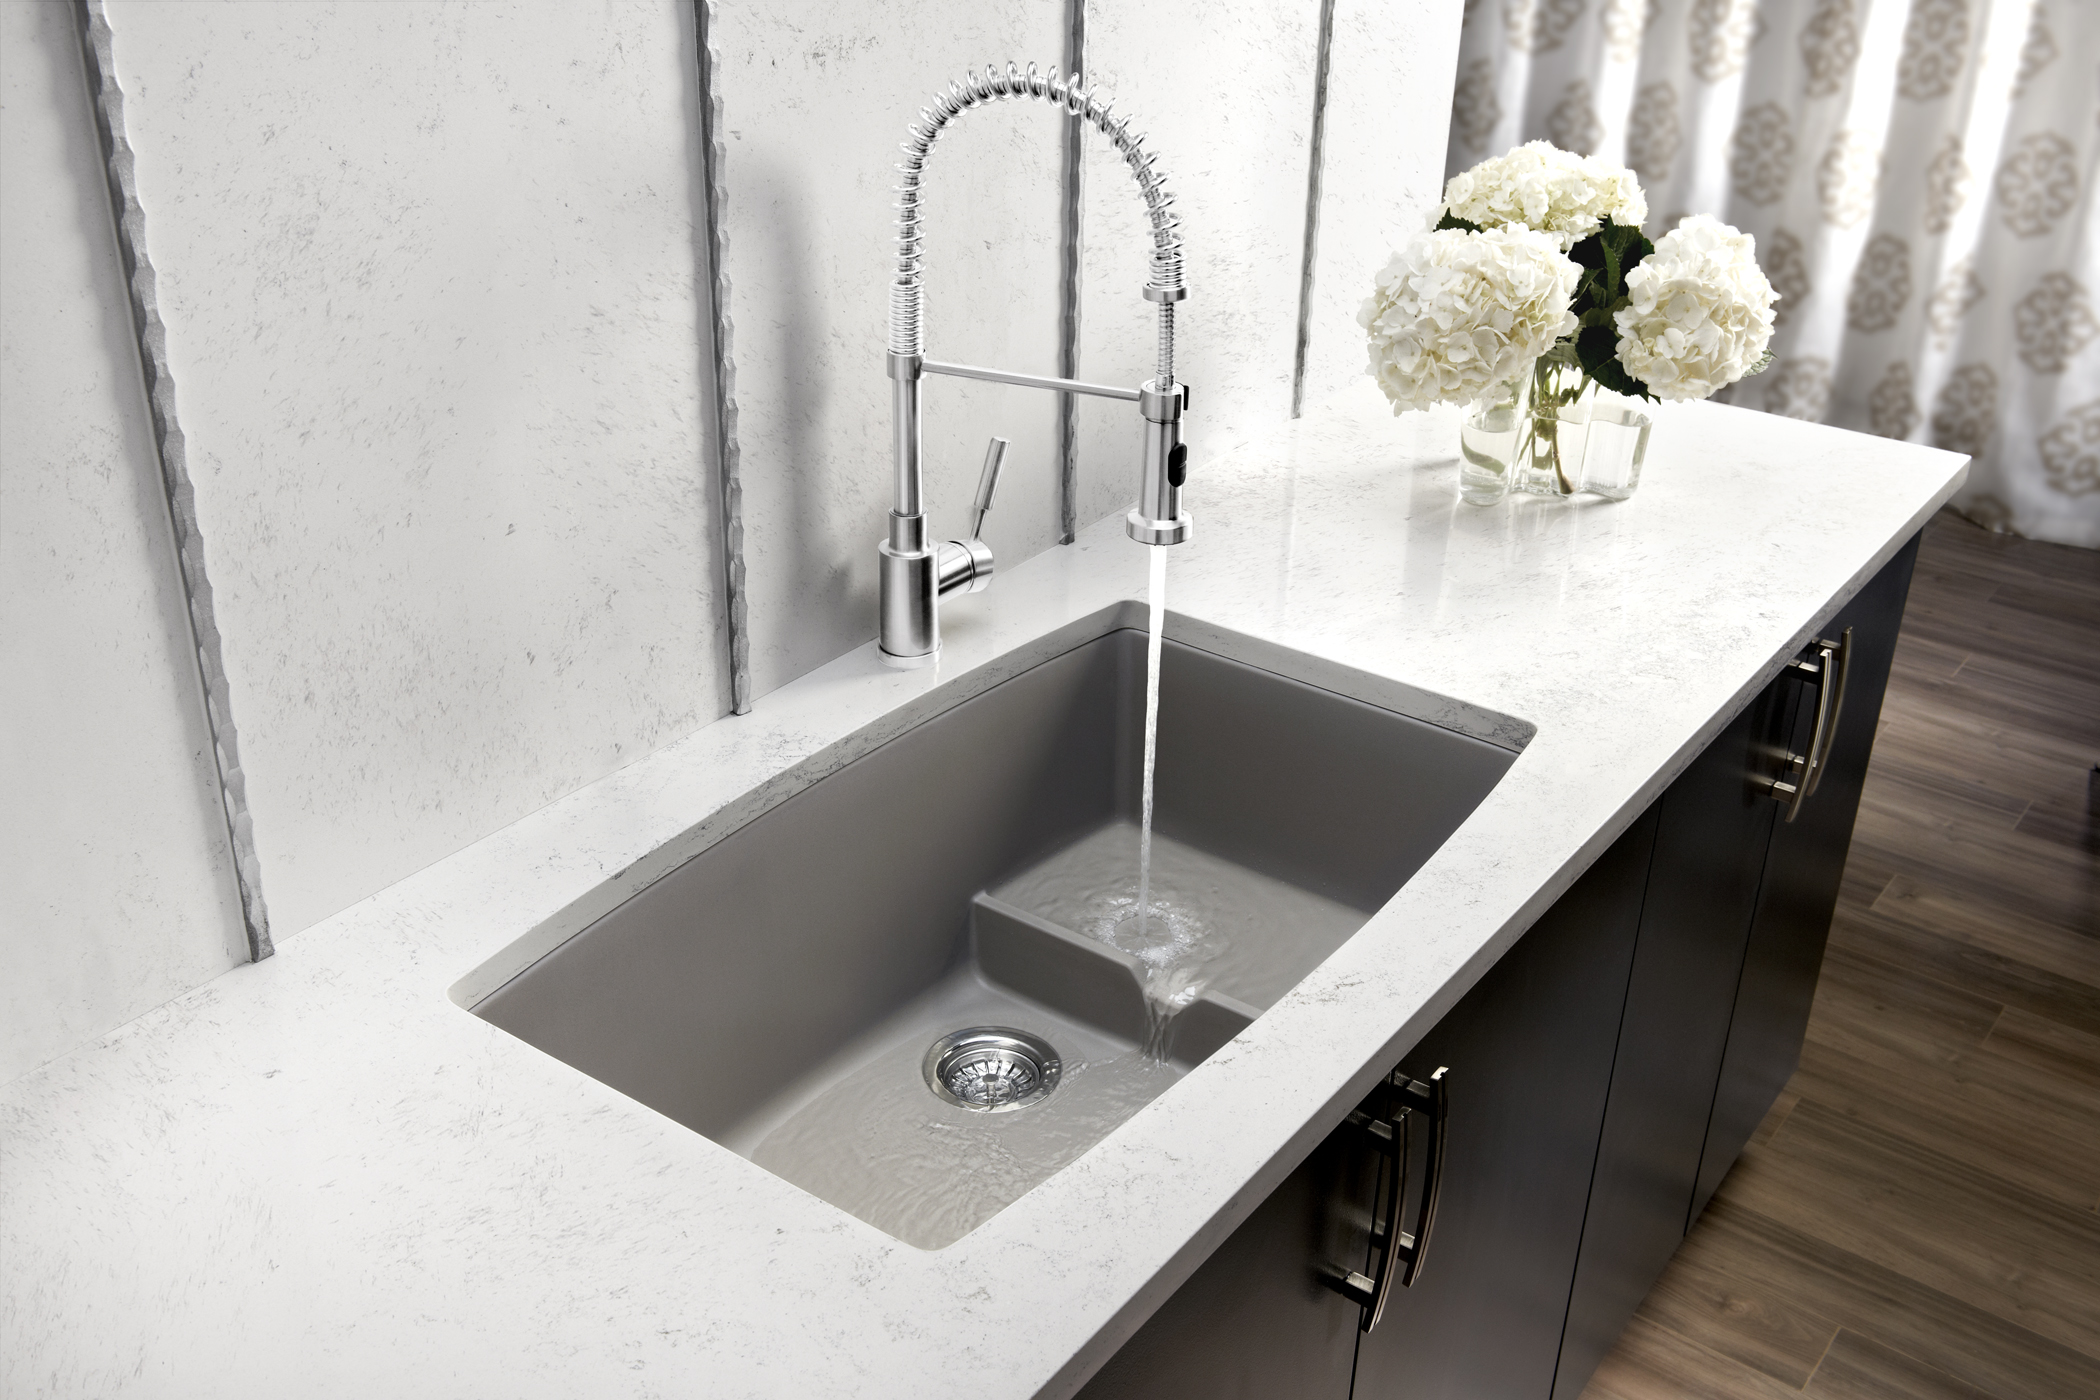 Uncategorized Kitchen Design Sink design of kitchen sink homesfeed double steel flower cabinet kitchensink